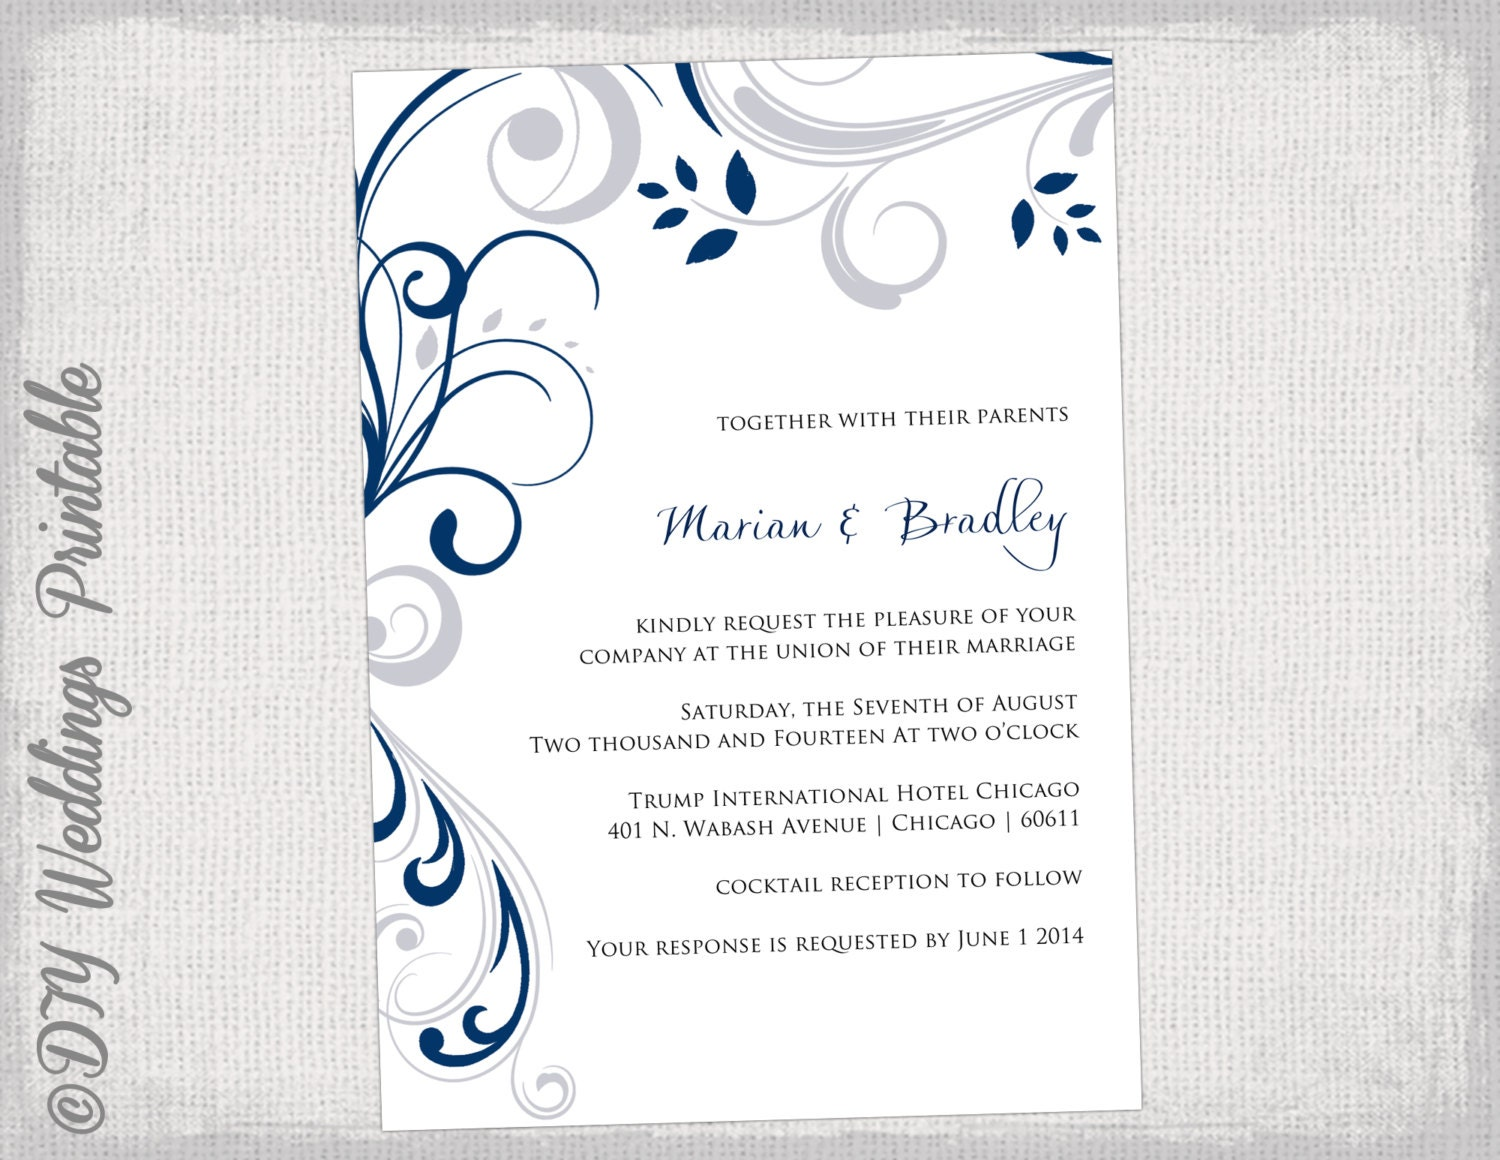 Printable Wedding Invitation Templates Silver Gray And Navy - Wedding invitation templates: silver wedding invitations templates